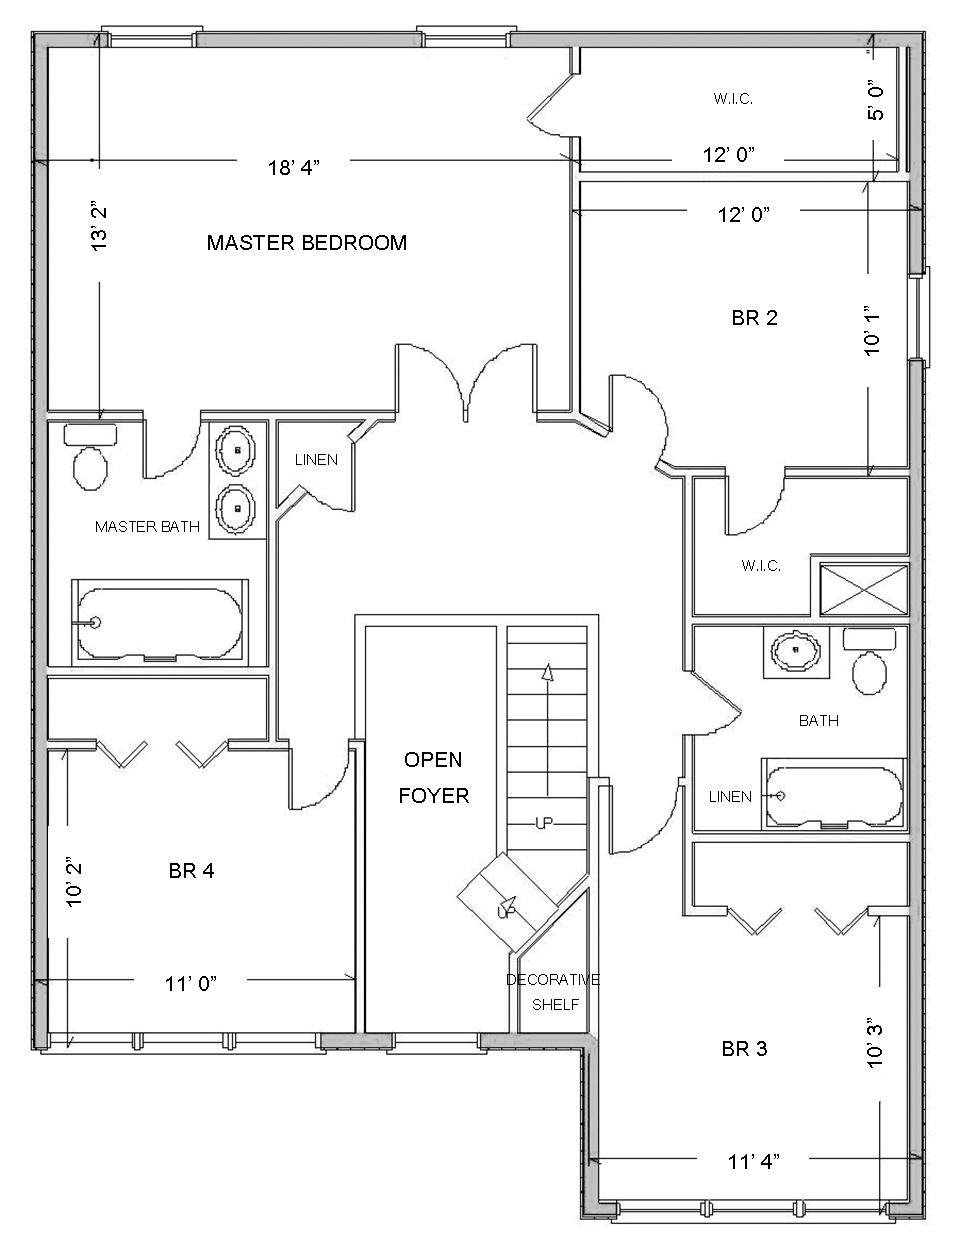 Digital smart draw floor plan with smartdraw software for How to draw house blueprints